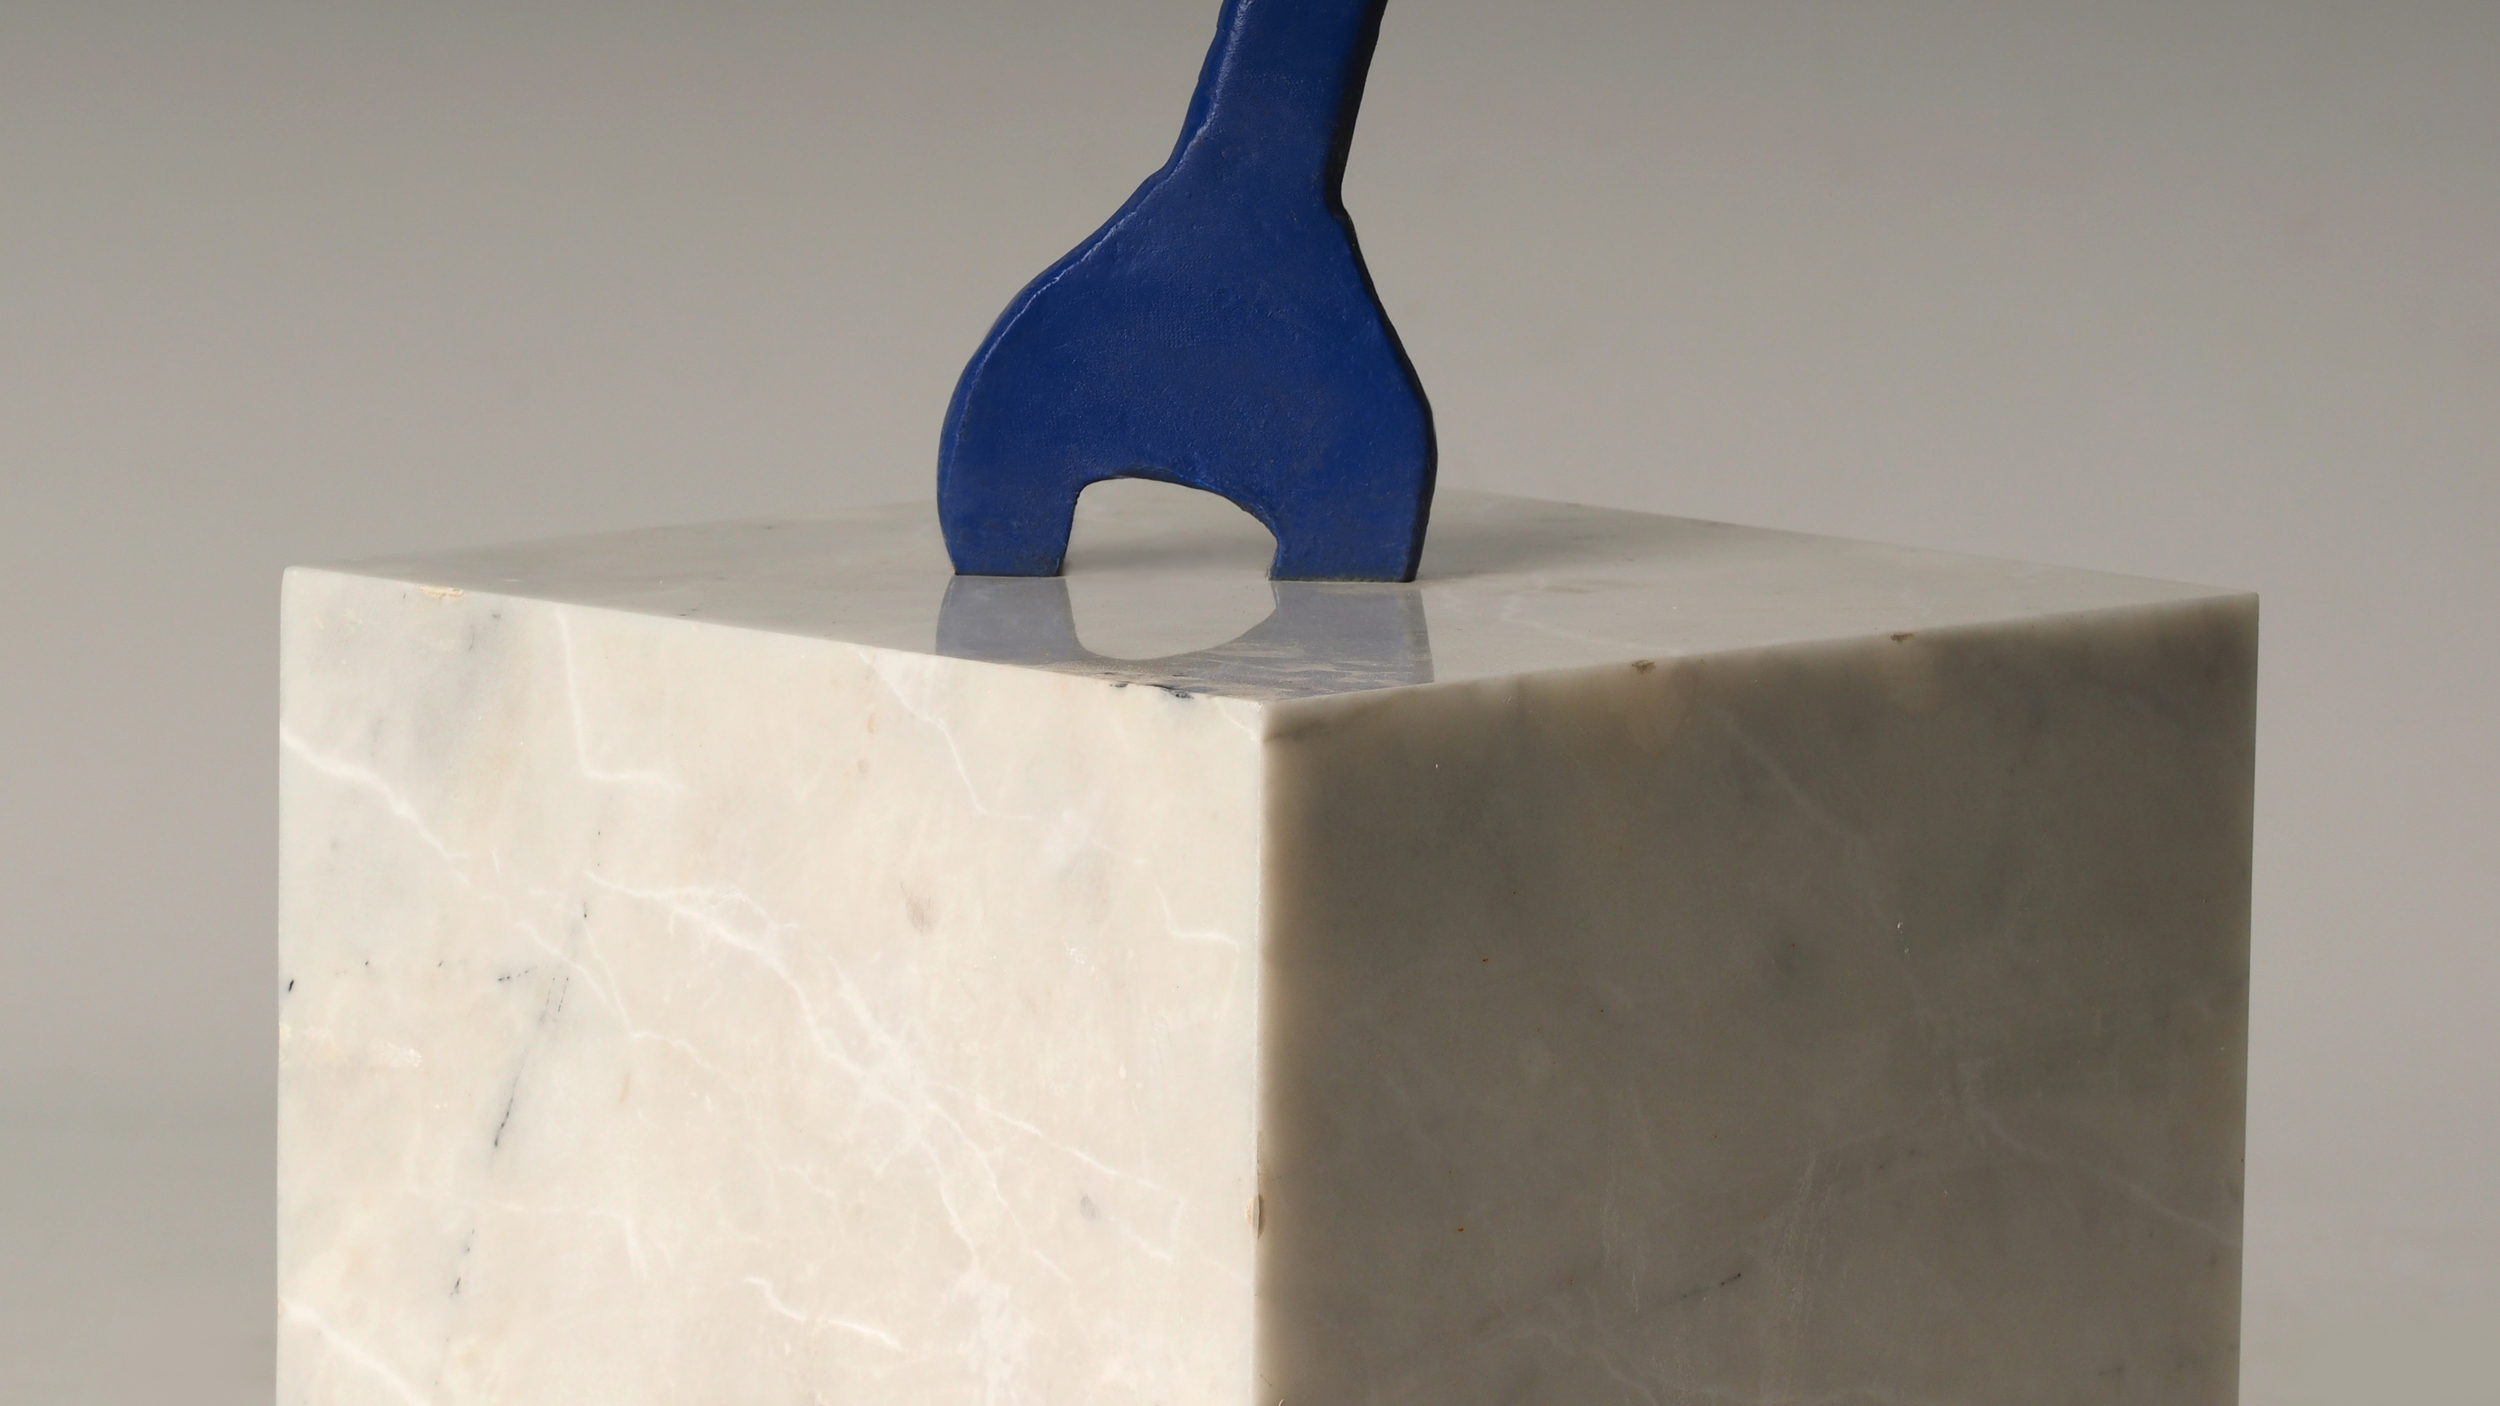 Wrench in Marble Cube (Detail)